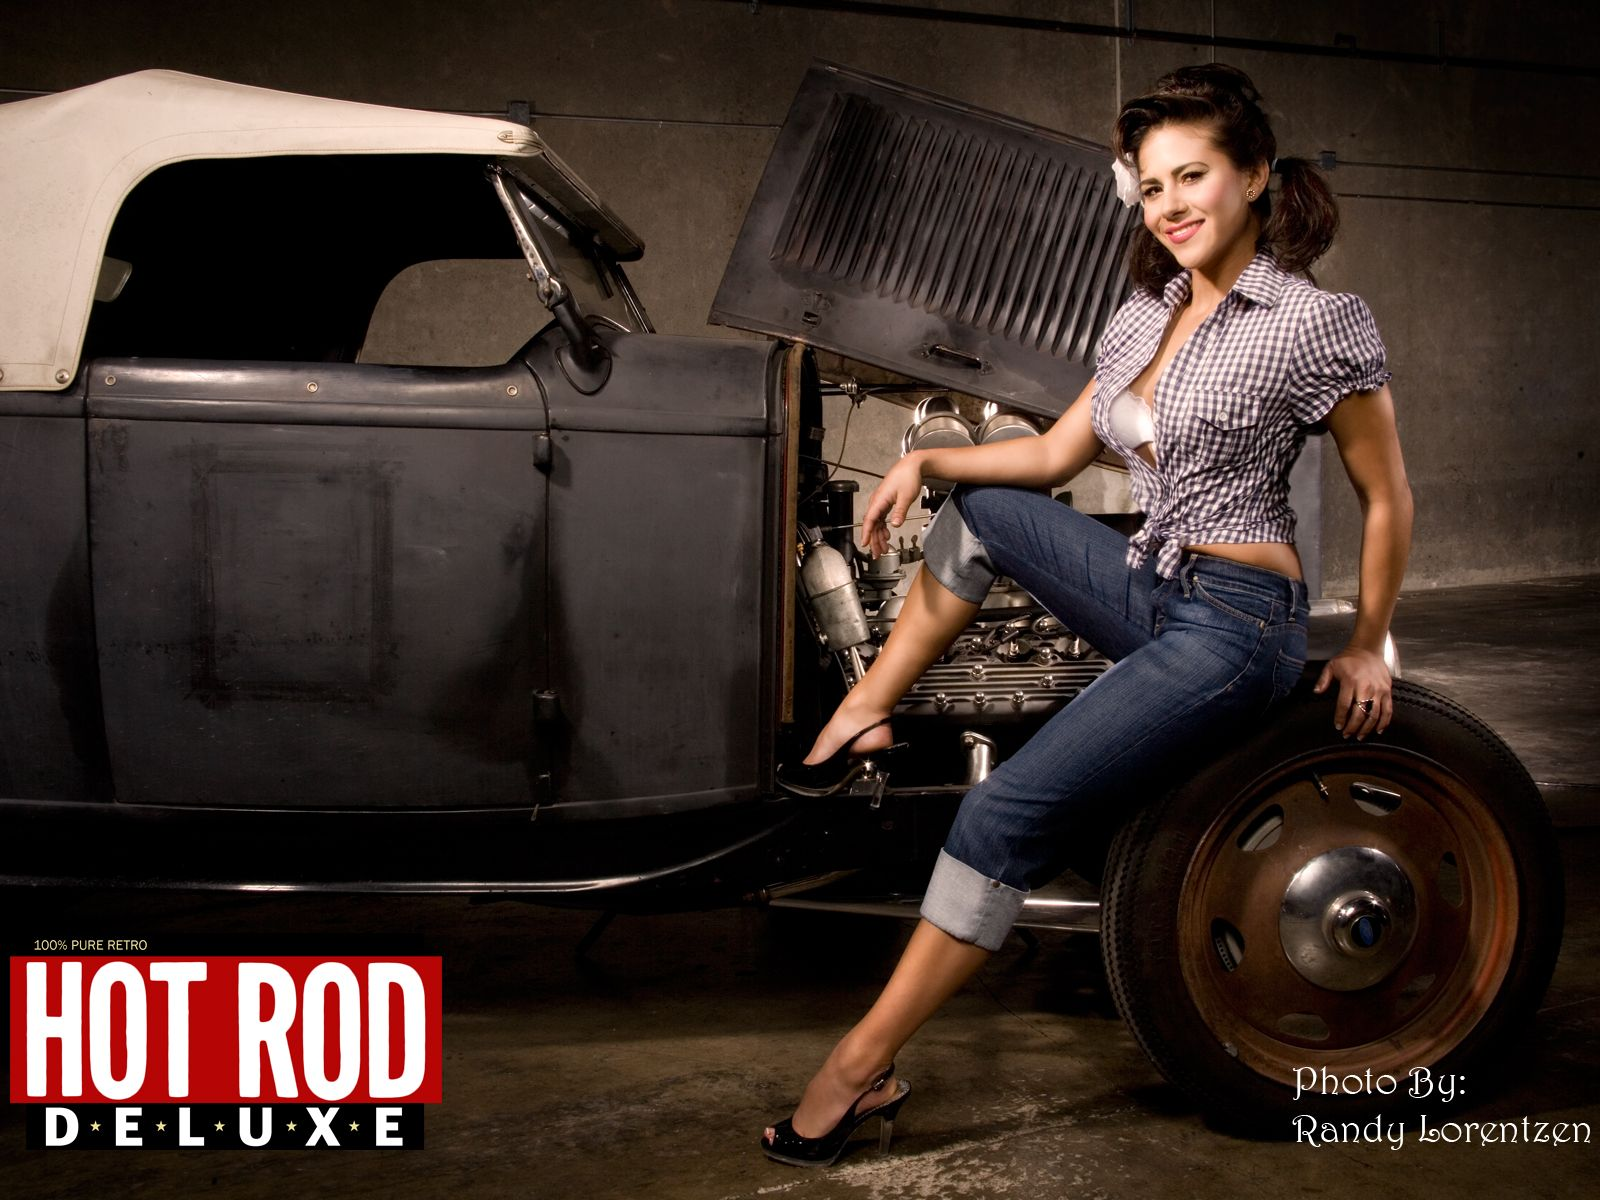 http://2.bp.blogspot.com/_DX-y6S59zdI/TSoQbSHswpI/AAAAAAAAAhs/B7M3v6HY-IQ/s1600/hrdp_muscle_car_hot__rod_desktops_07_hot_rod_deluxe_girls_wallpapers.jpg